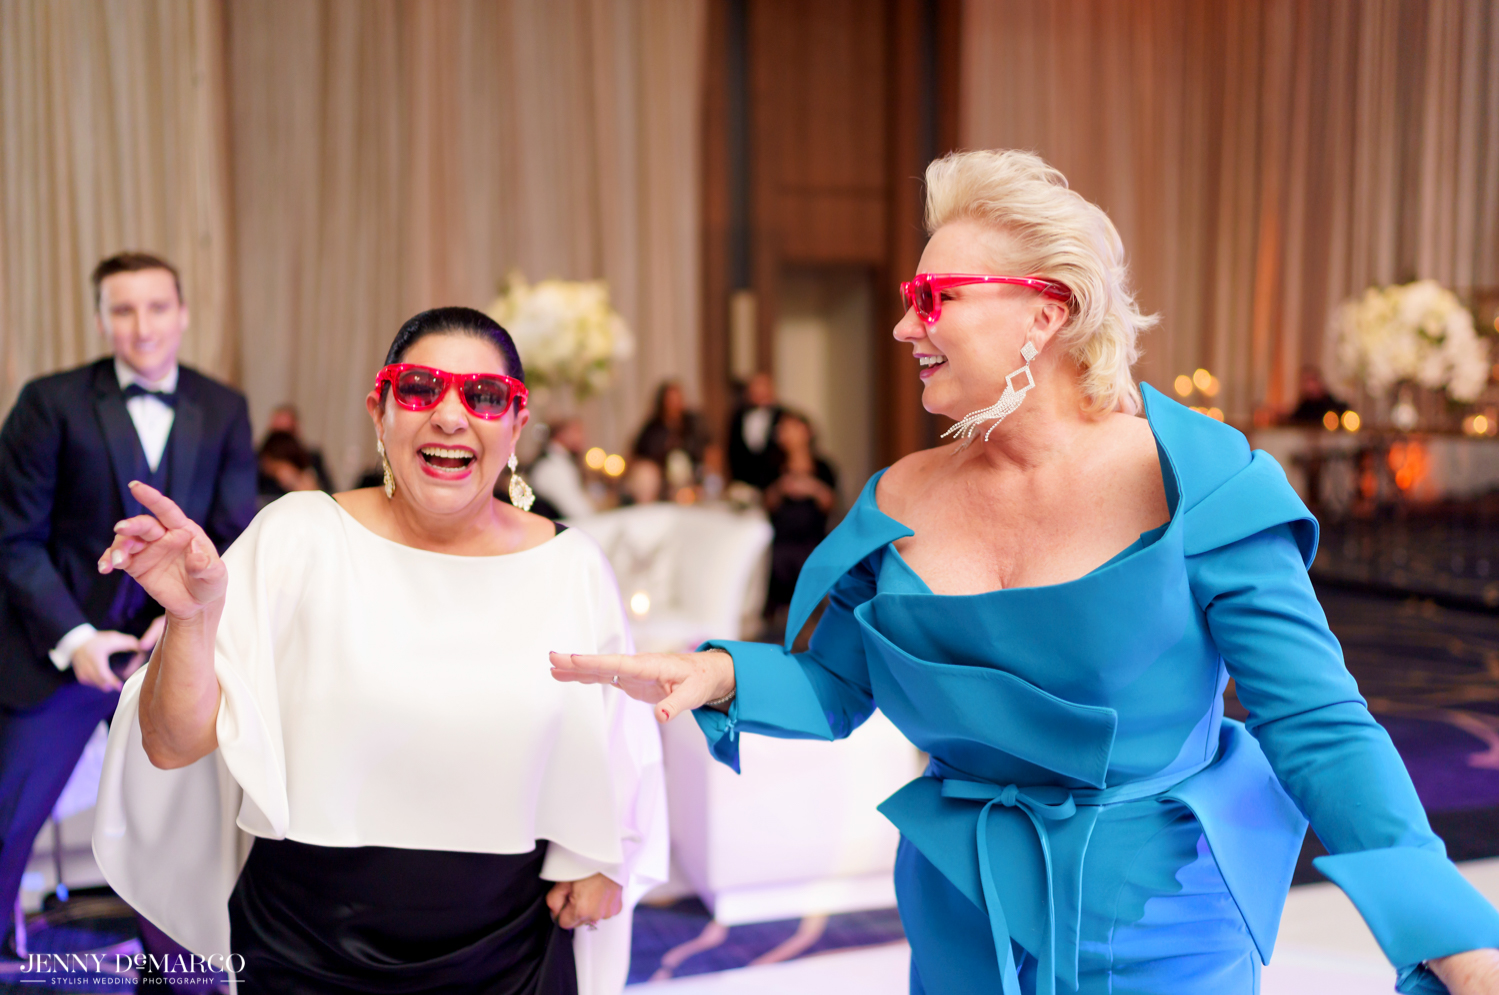 guests dancing at the wedding reception with fun sunglasses on